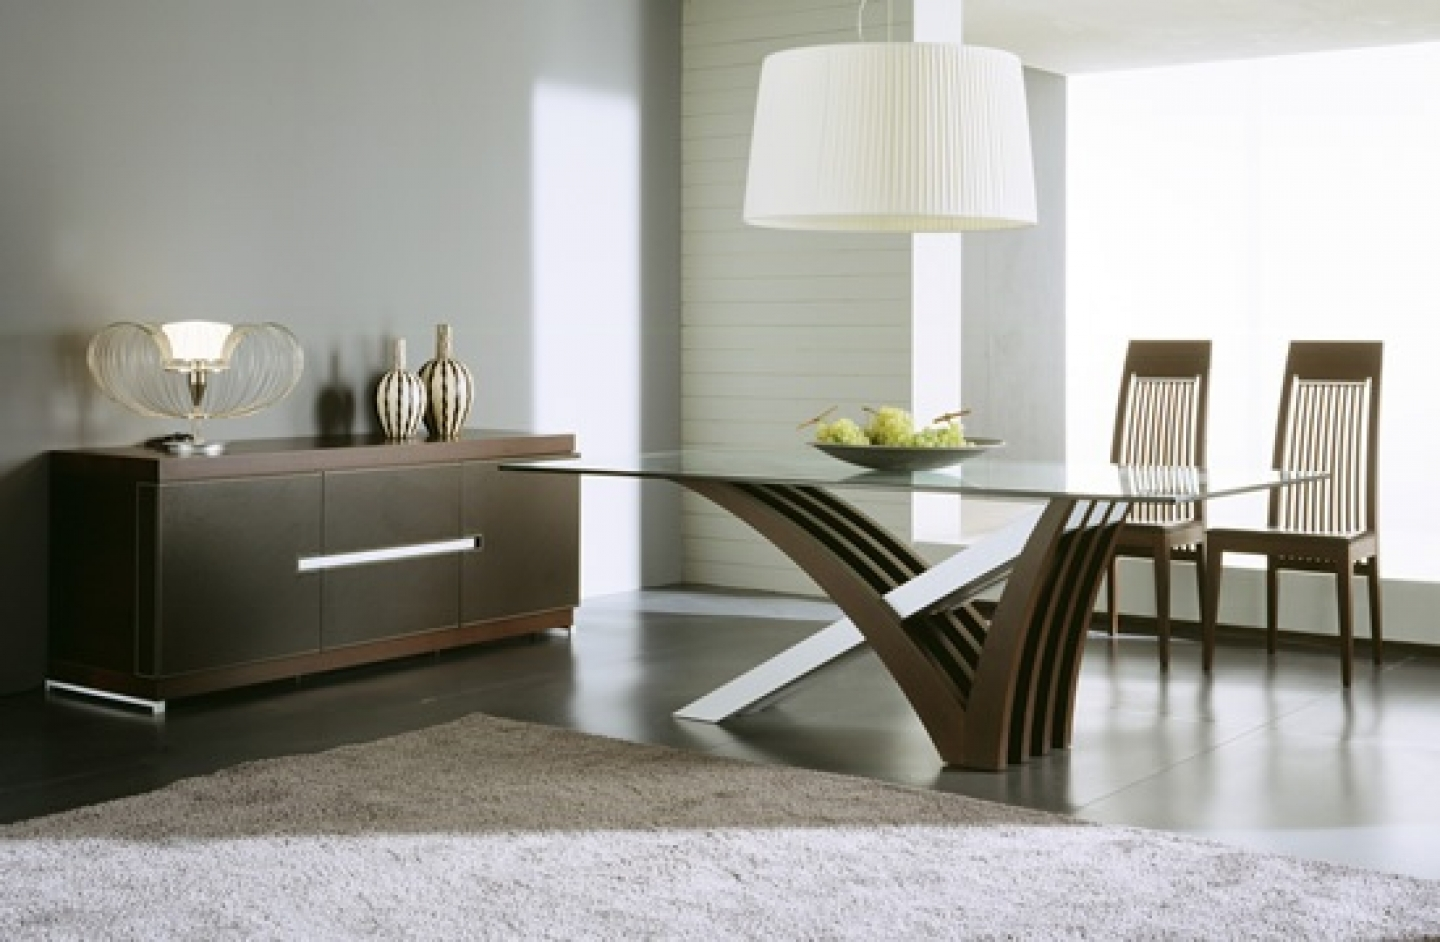 Teak patio furniture at home decor dream house - Modern dining table ideas ...